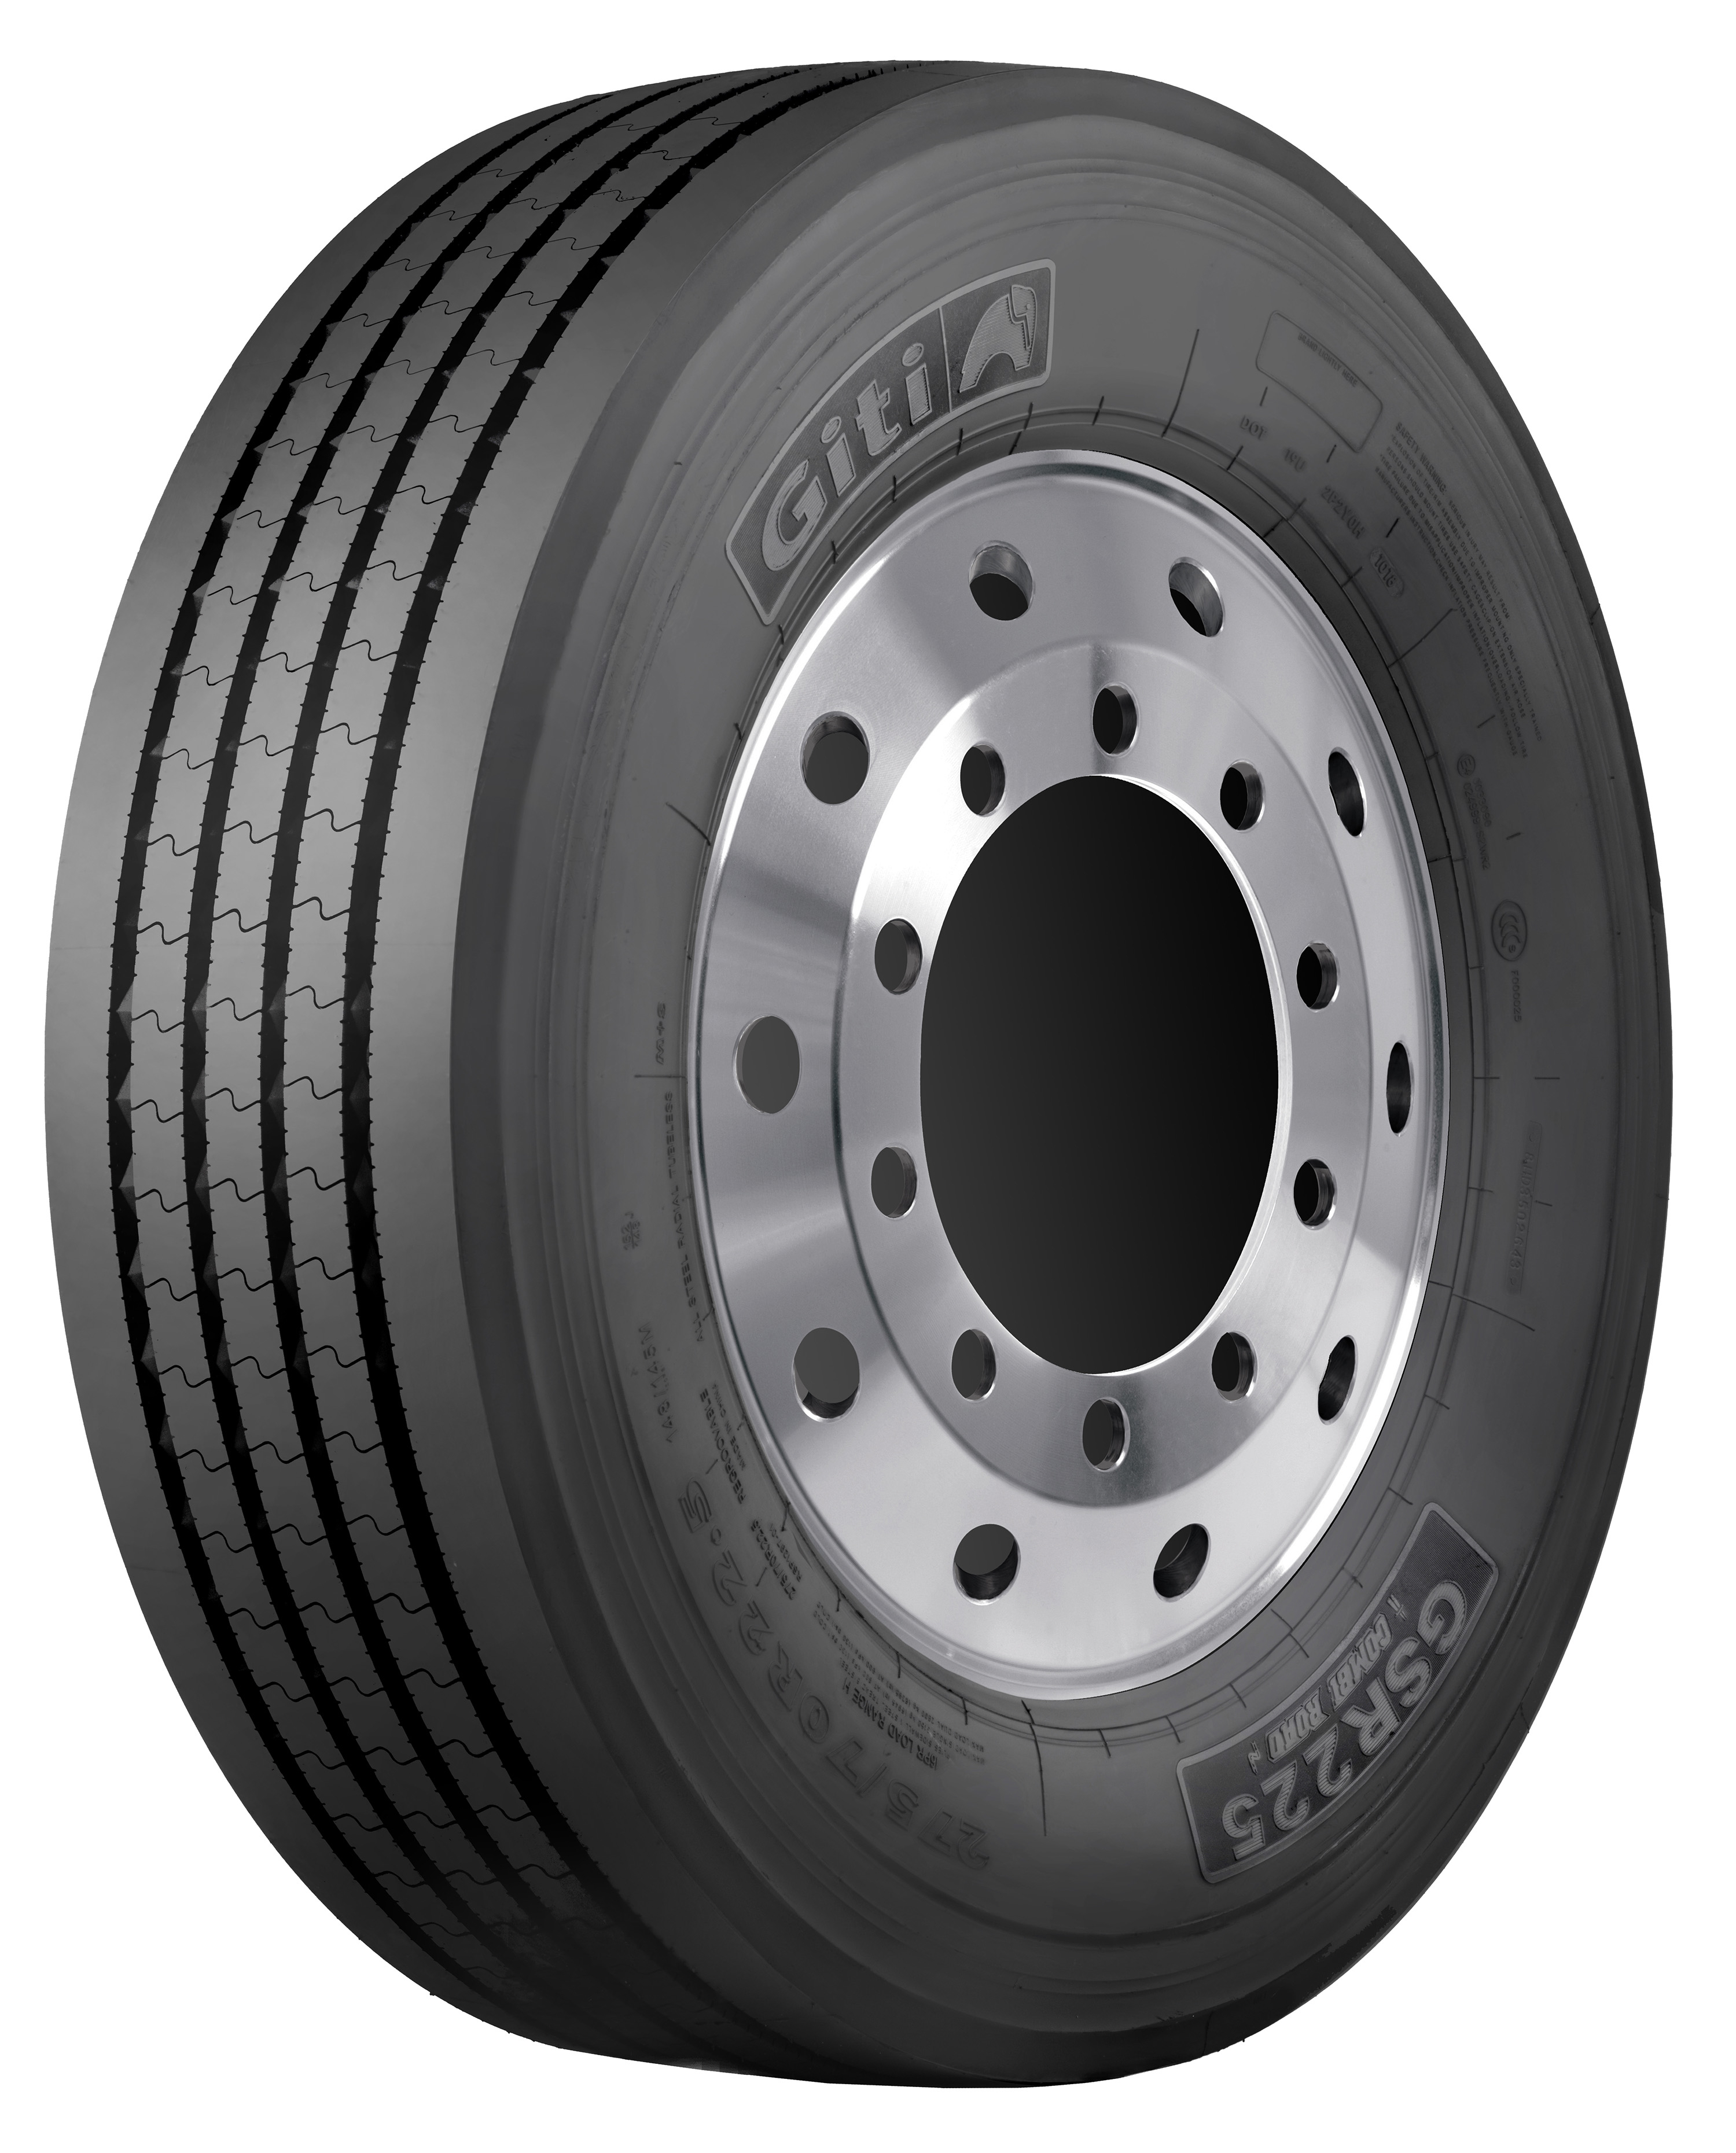 Giti Adds 4 Tires to Light Duty Commercial Lineup